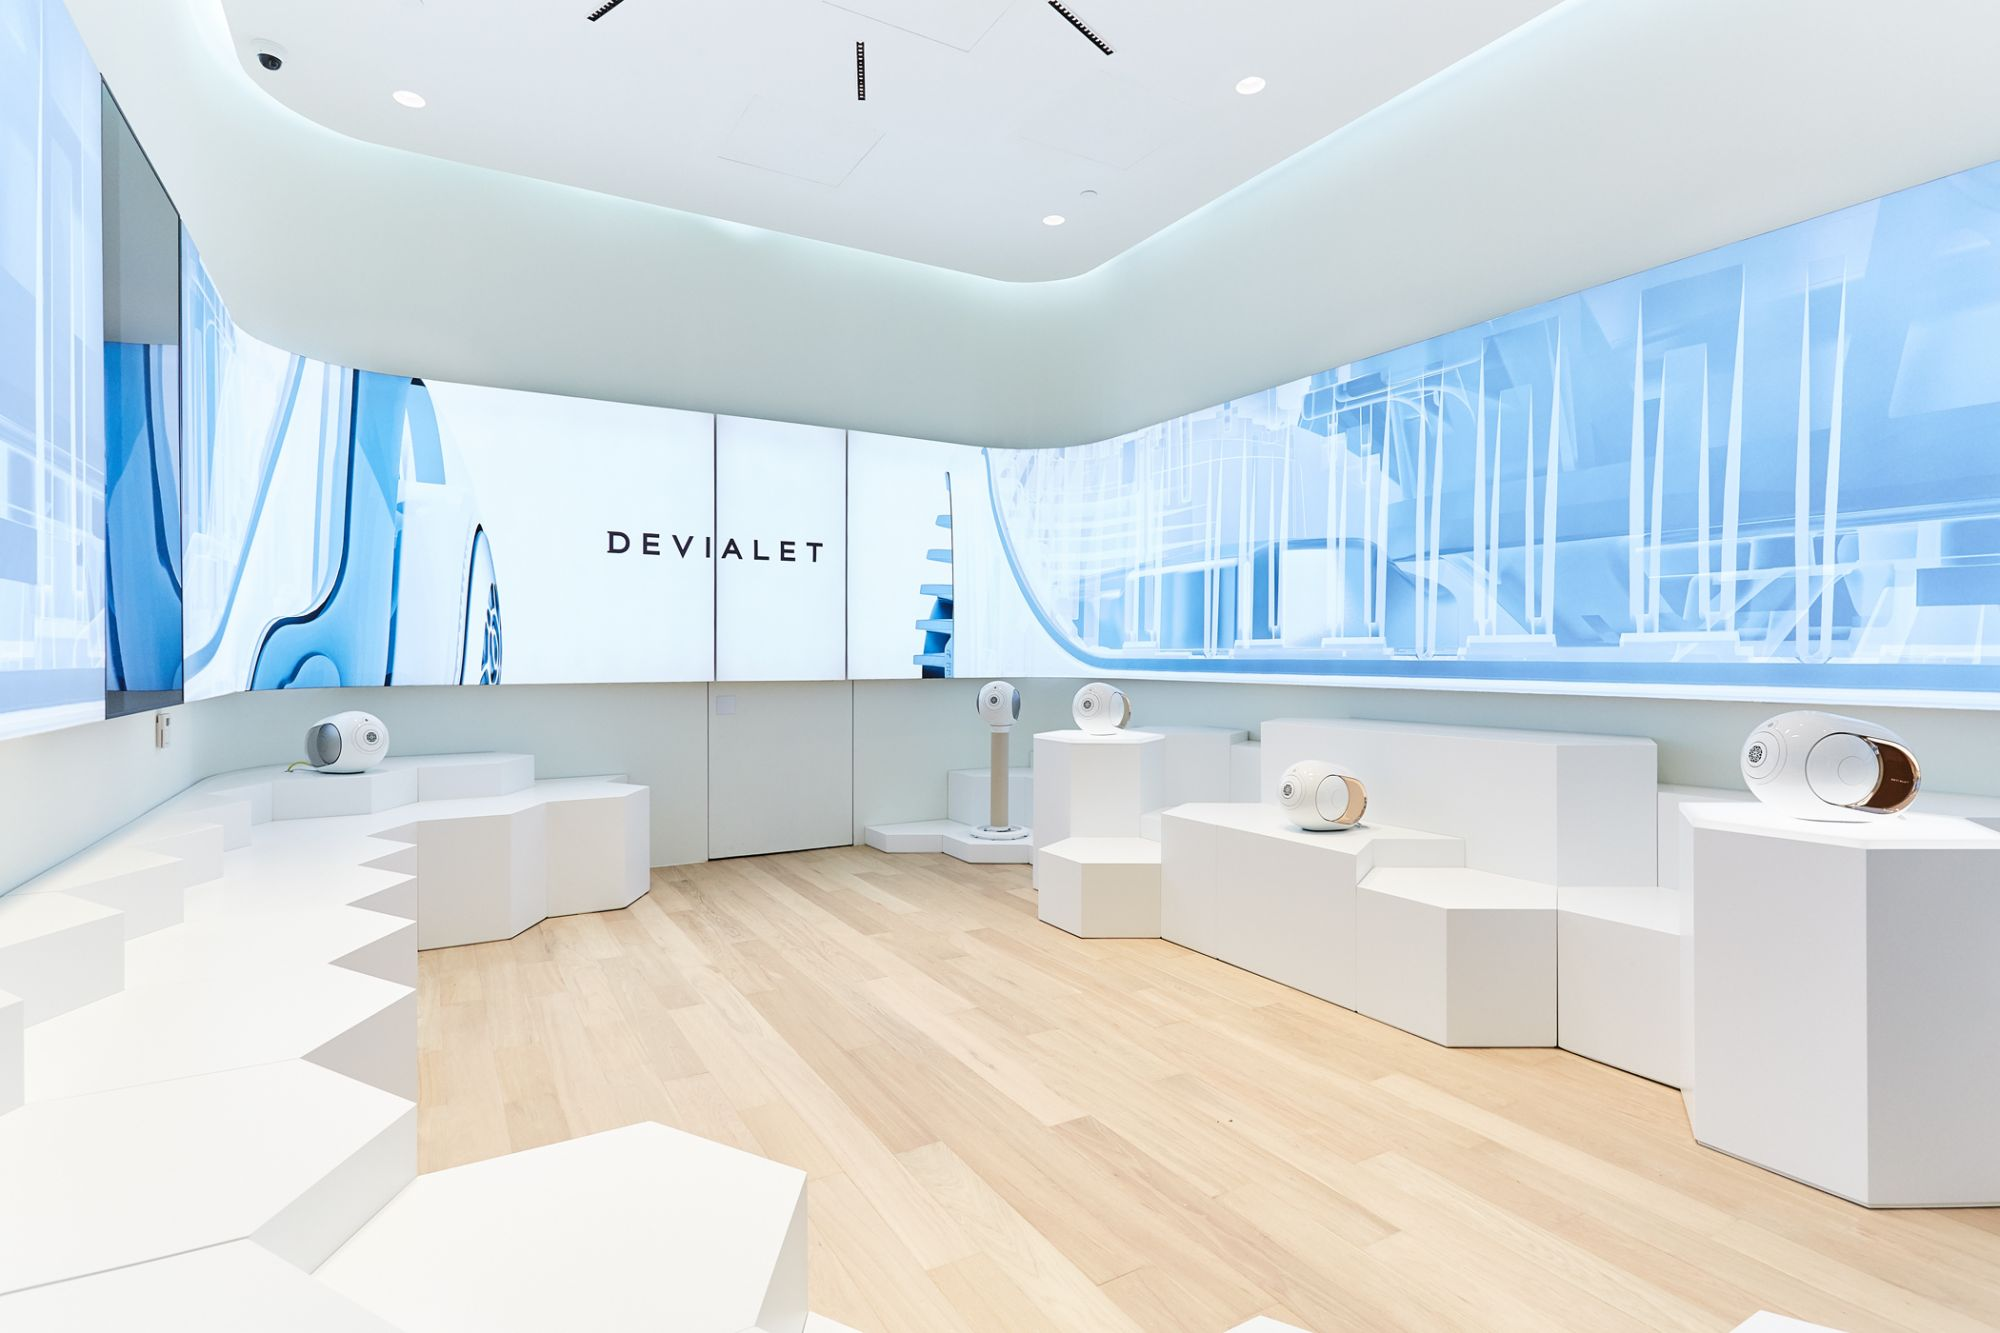 10 Reasons Why Devialet Is Tech's Next Big Thing